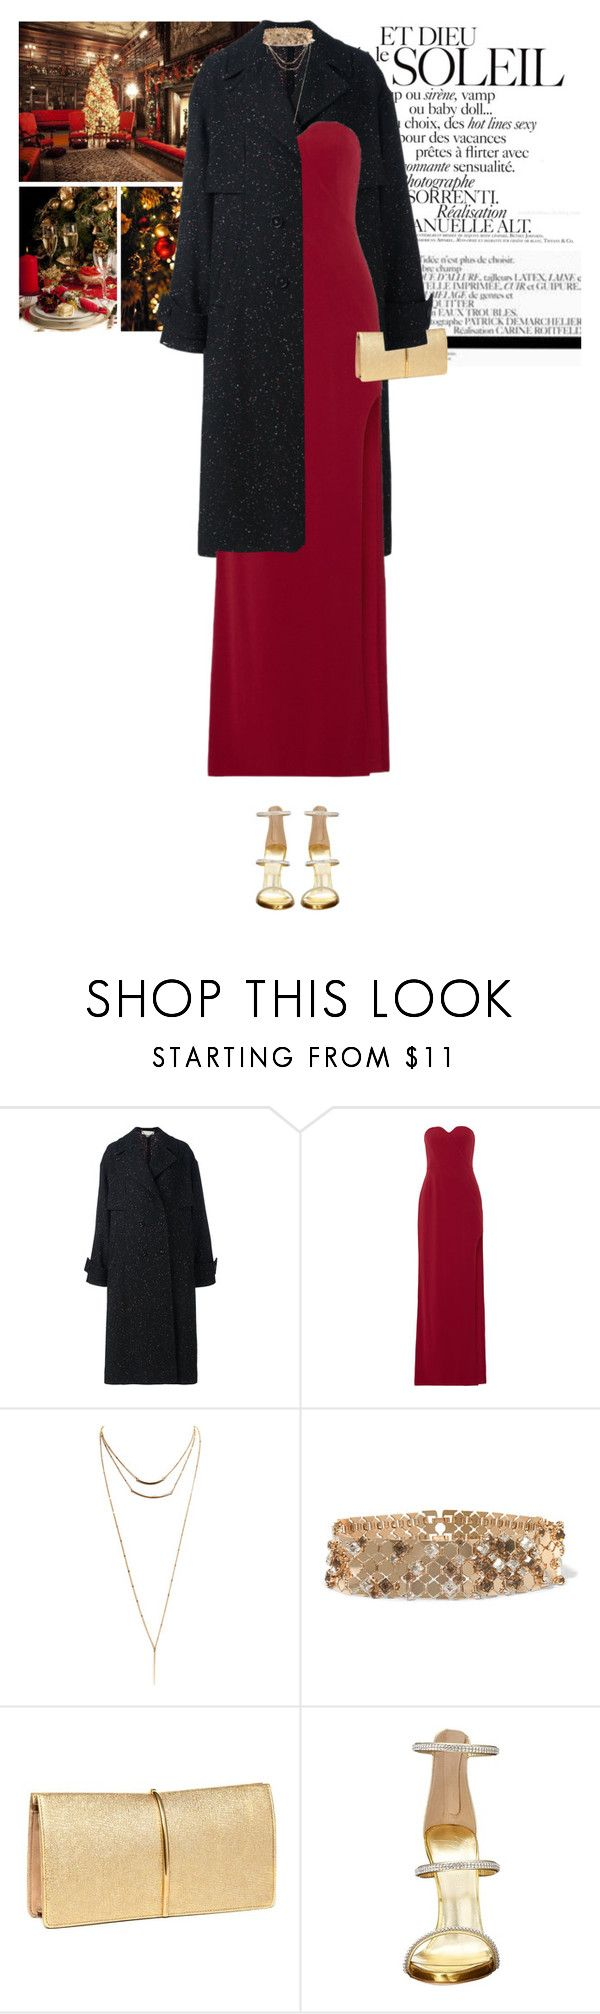 """""""It's the most wonderful time of the year, with the kids jingle-belling, and everyone telling you be of good cheer. It's the most wonderful time of the year, it's the happiest season of all, with those holiday greetings and great happy meetings."""" by vicky-carter ❤ liked on Polyvore featuring Biltmore, STELLA McCARTNEY, Halston Heritage, Wet Seal, Lanvin, Nina Ricci and Giuseppe Zanotti"""